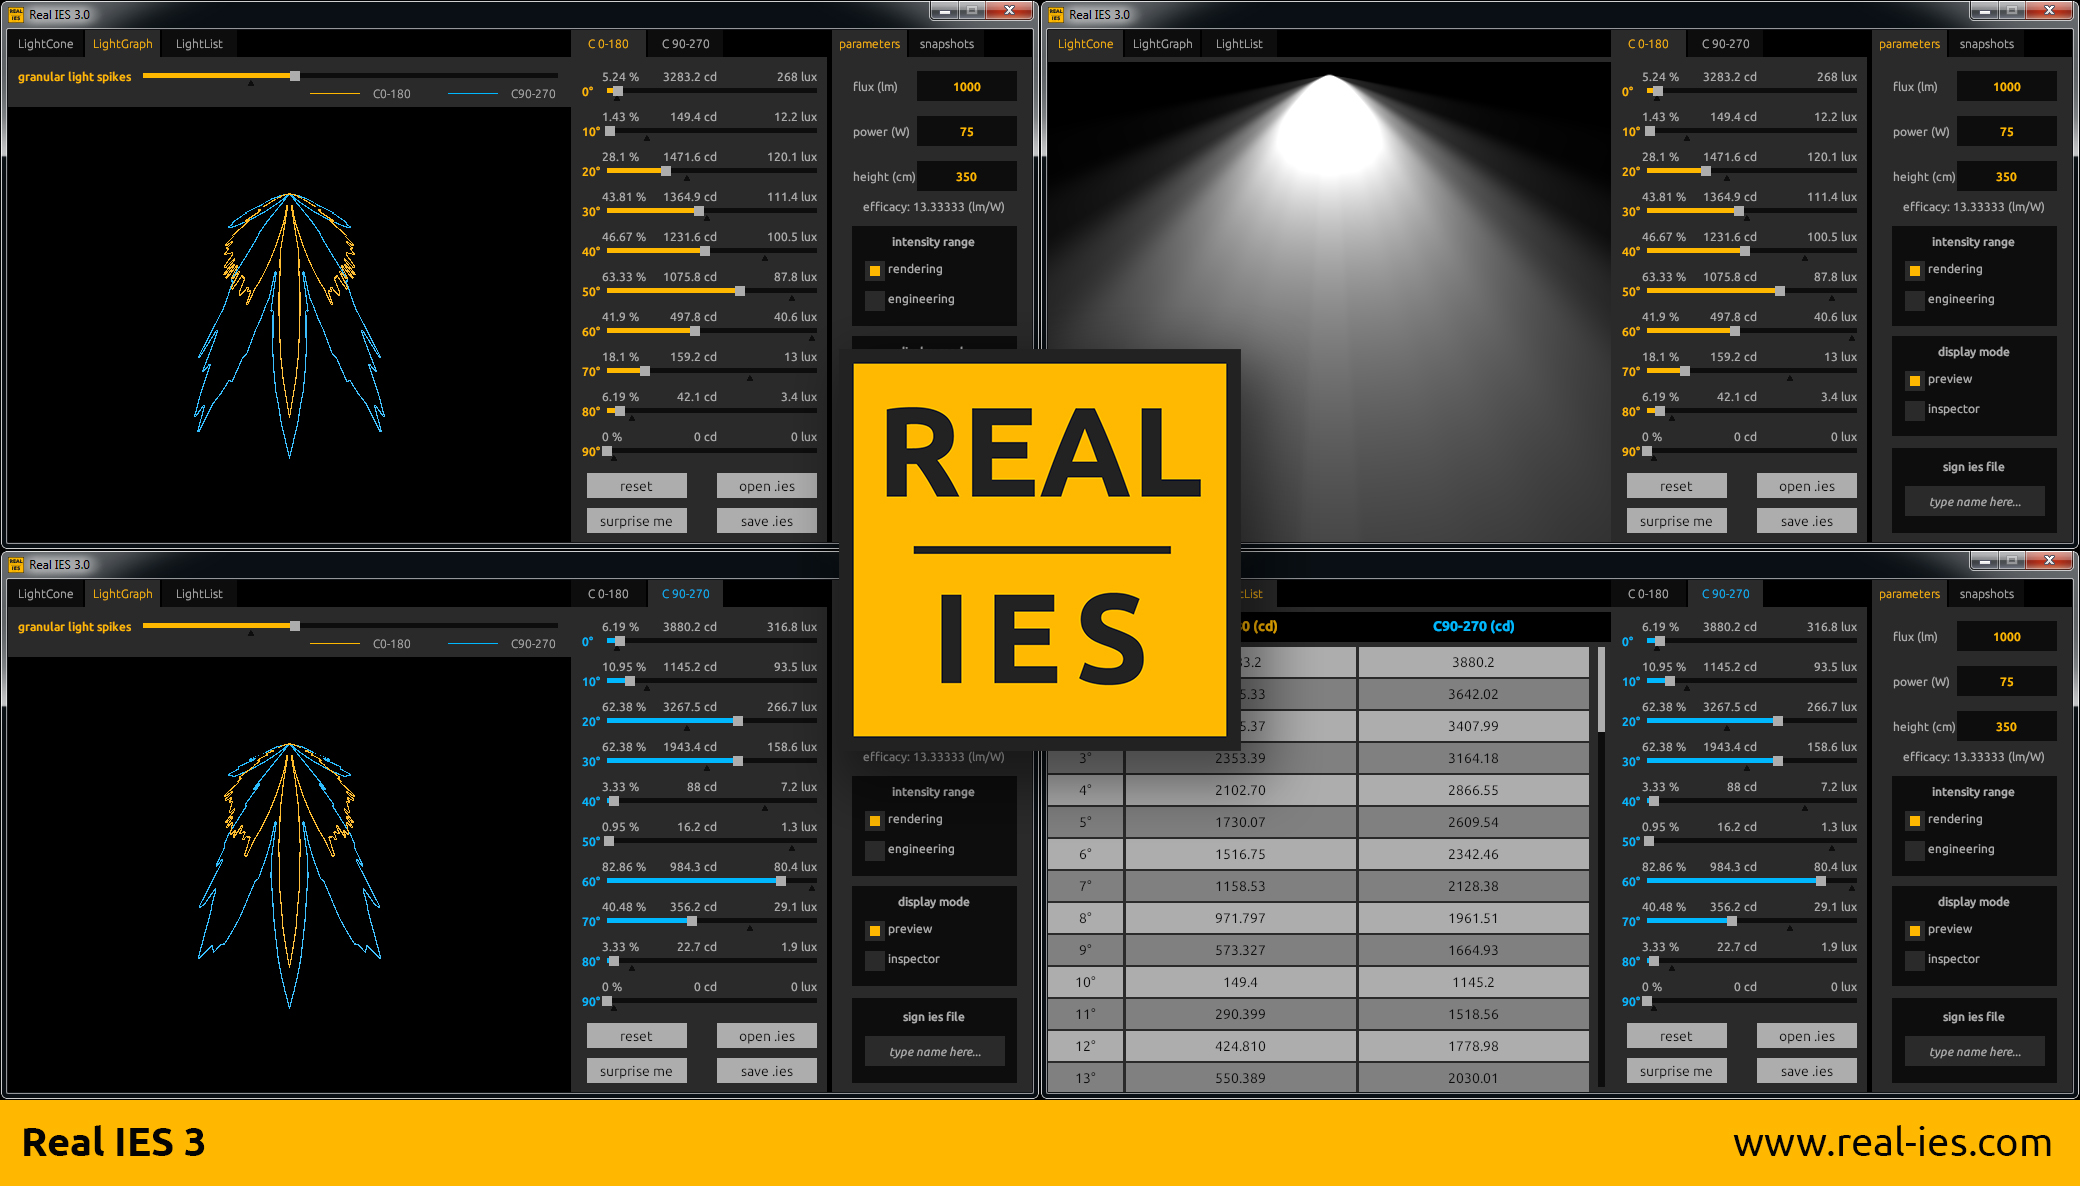 Real IES 3 user interface features